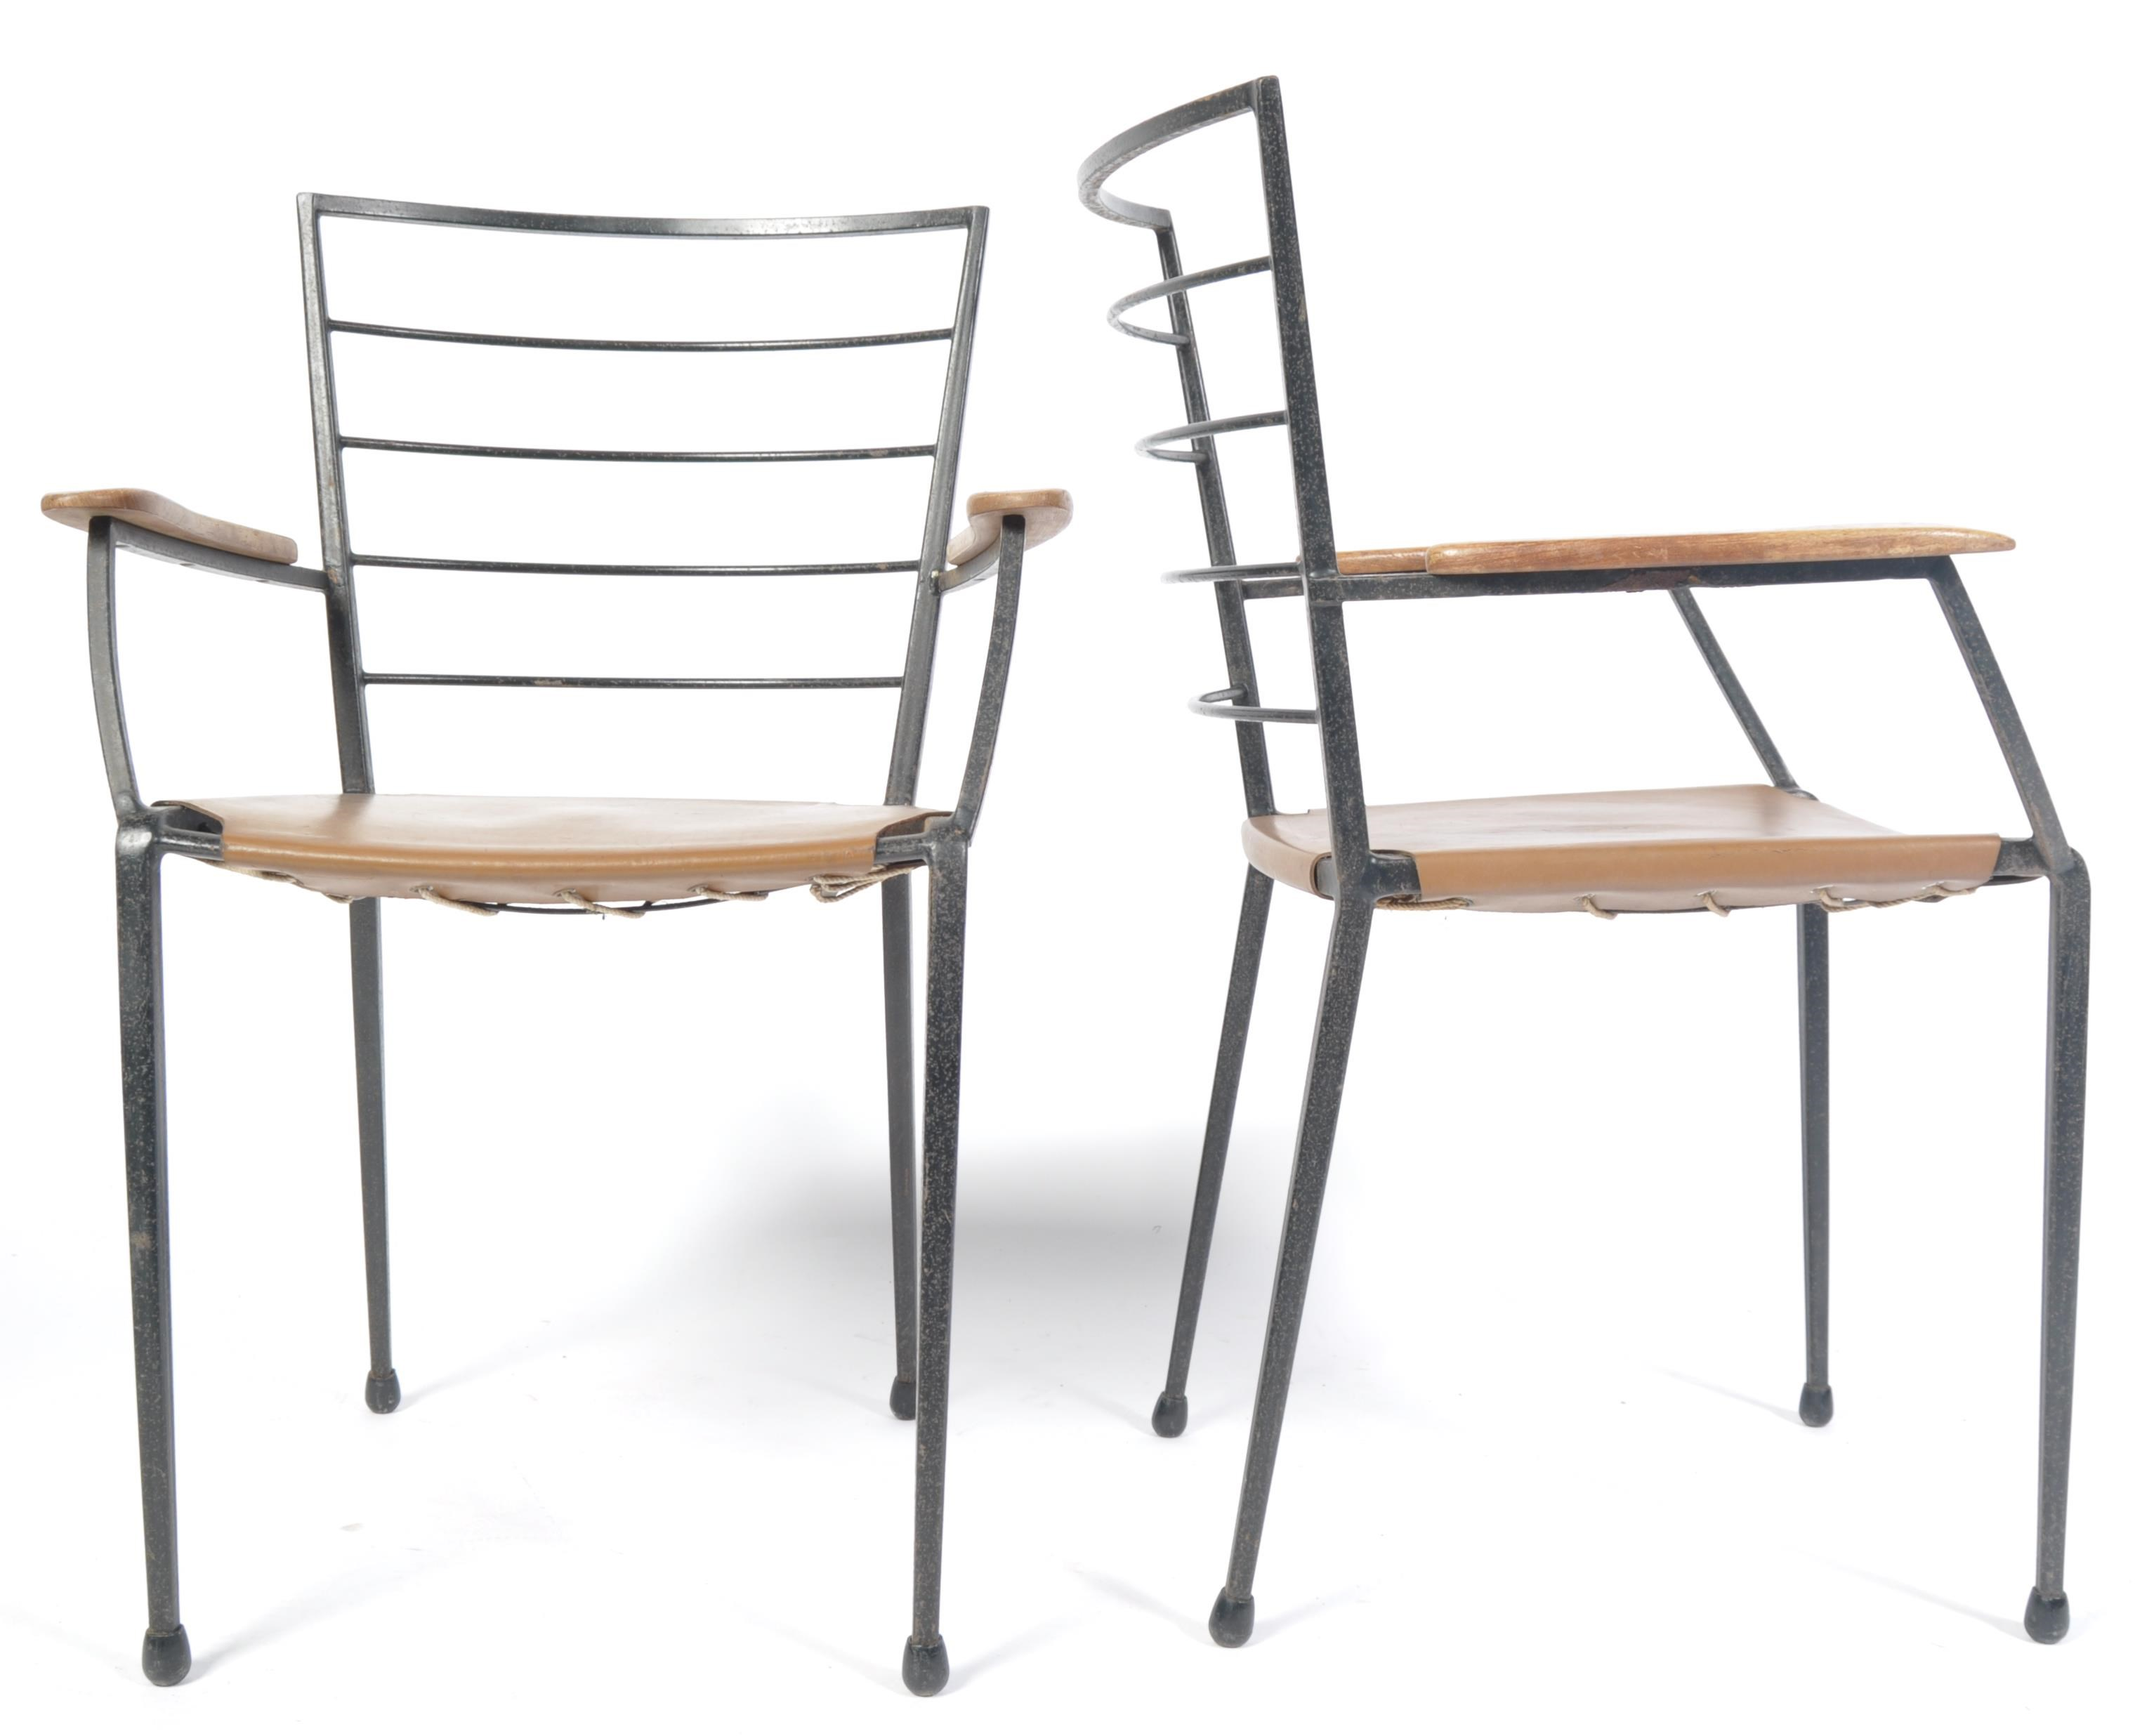 Lot 38 - RARE STAPLES 1970'S LADDERAX CHAIRS BY ROBERT HEAL